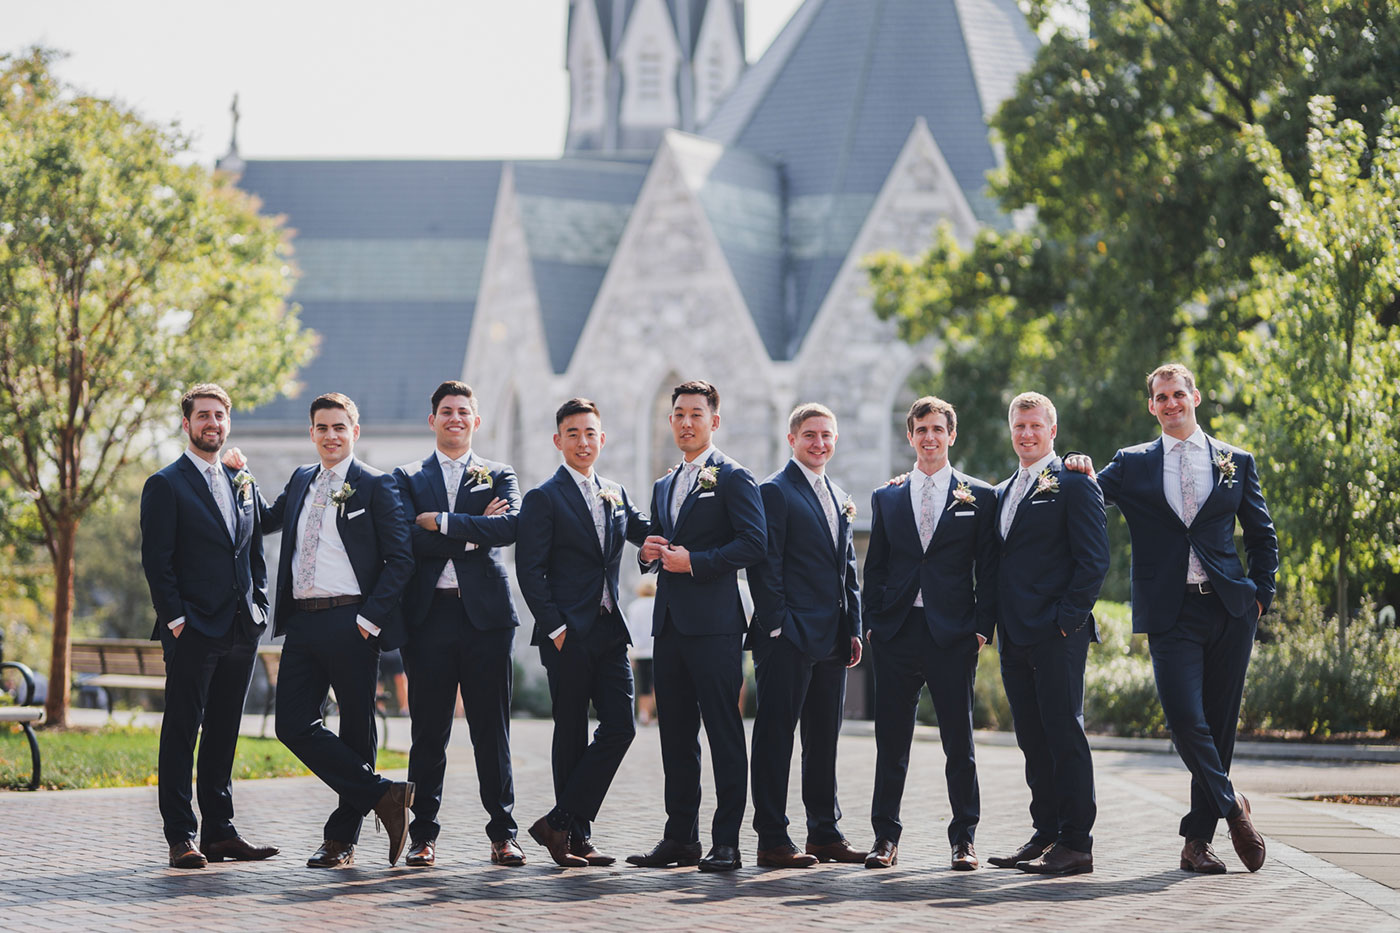 groom and groomsmen from a wedding at Saint Thomas of Villanova by Weddings by Hanel